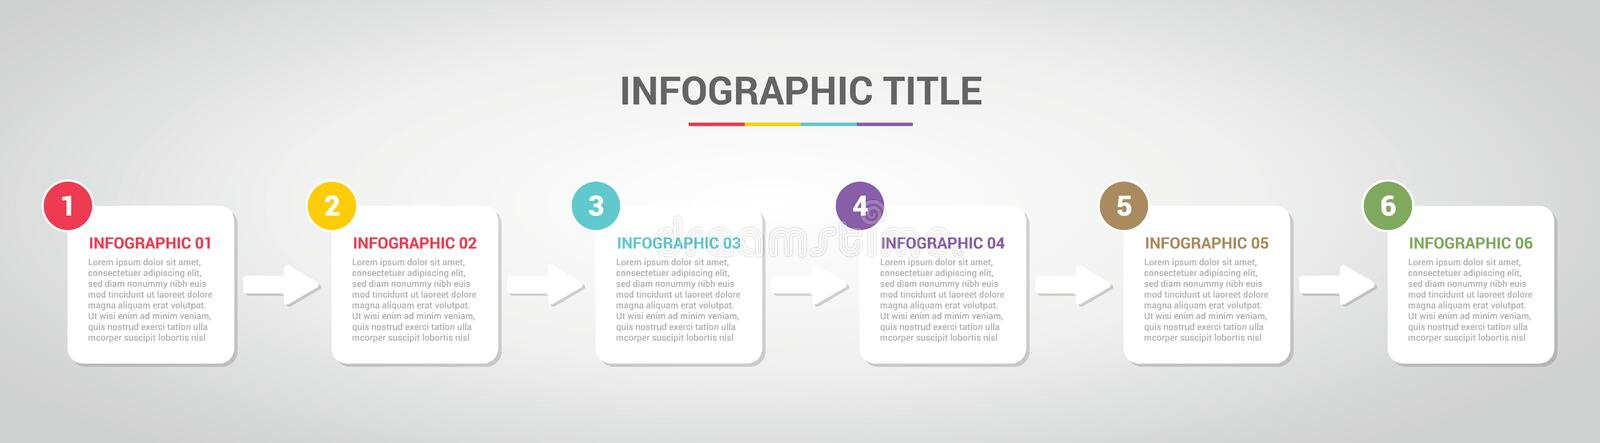 Infographic template with boxed box style for step or process timeline with various color with 6 step - vector royalty free illustration